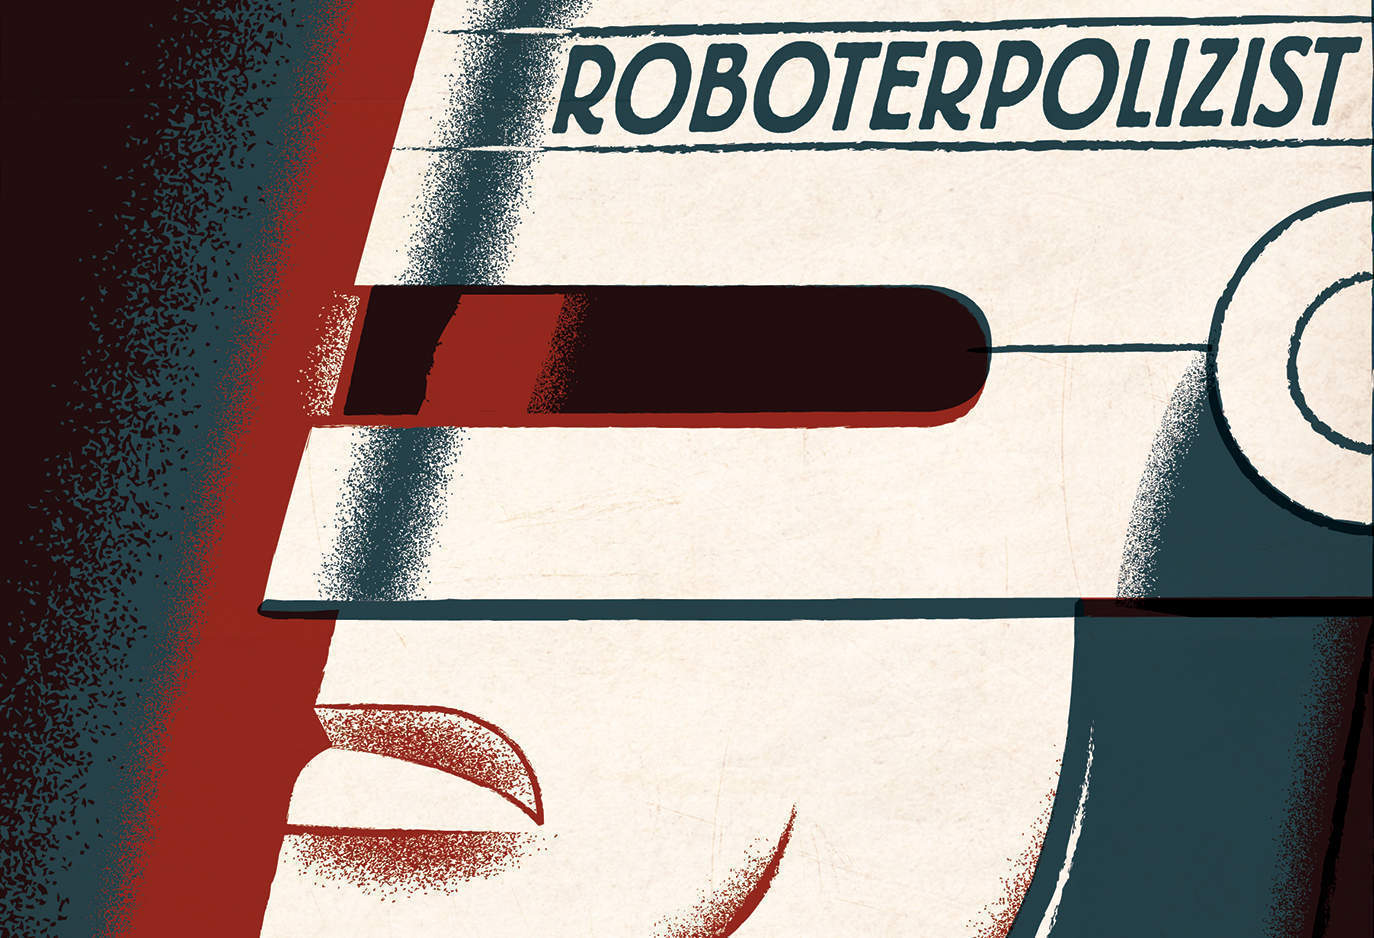 Lethal enforcers: Robocop and the collateral damage of Hollywood's quest for justice